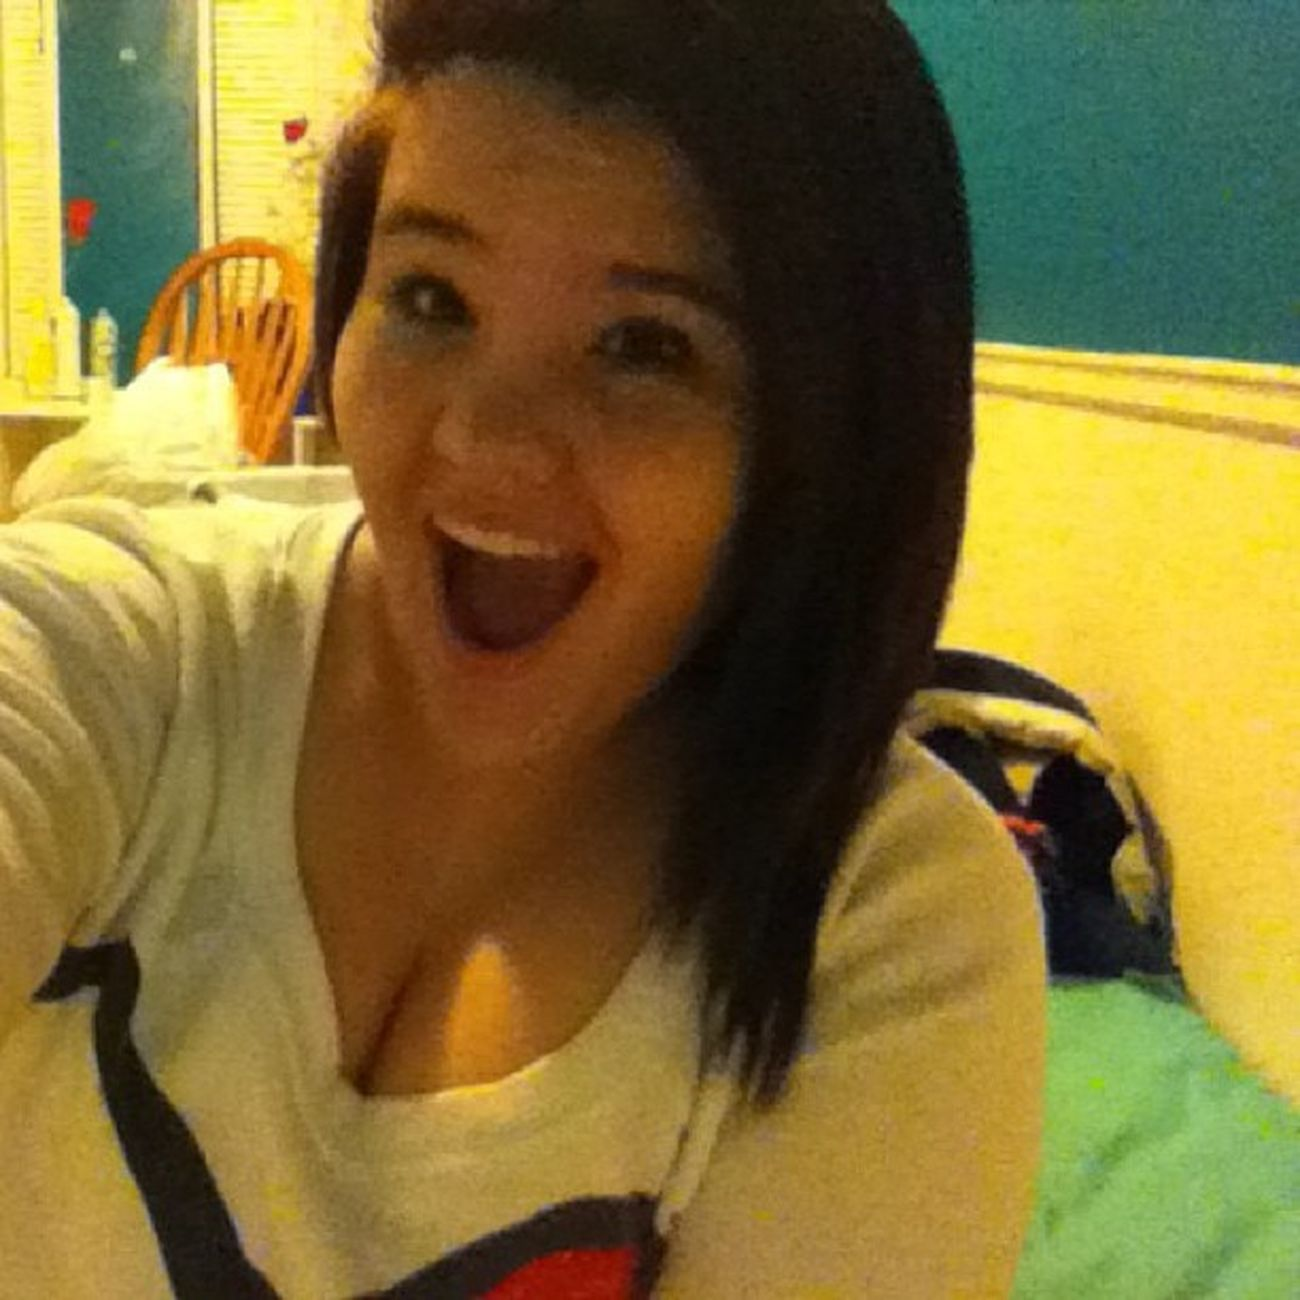 What I do when I clean my room! Cleaningroom Weirdo LookingGood Haha ong im weird bored hatecleaning ugh argg